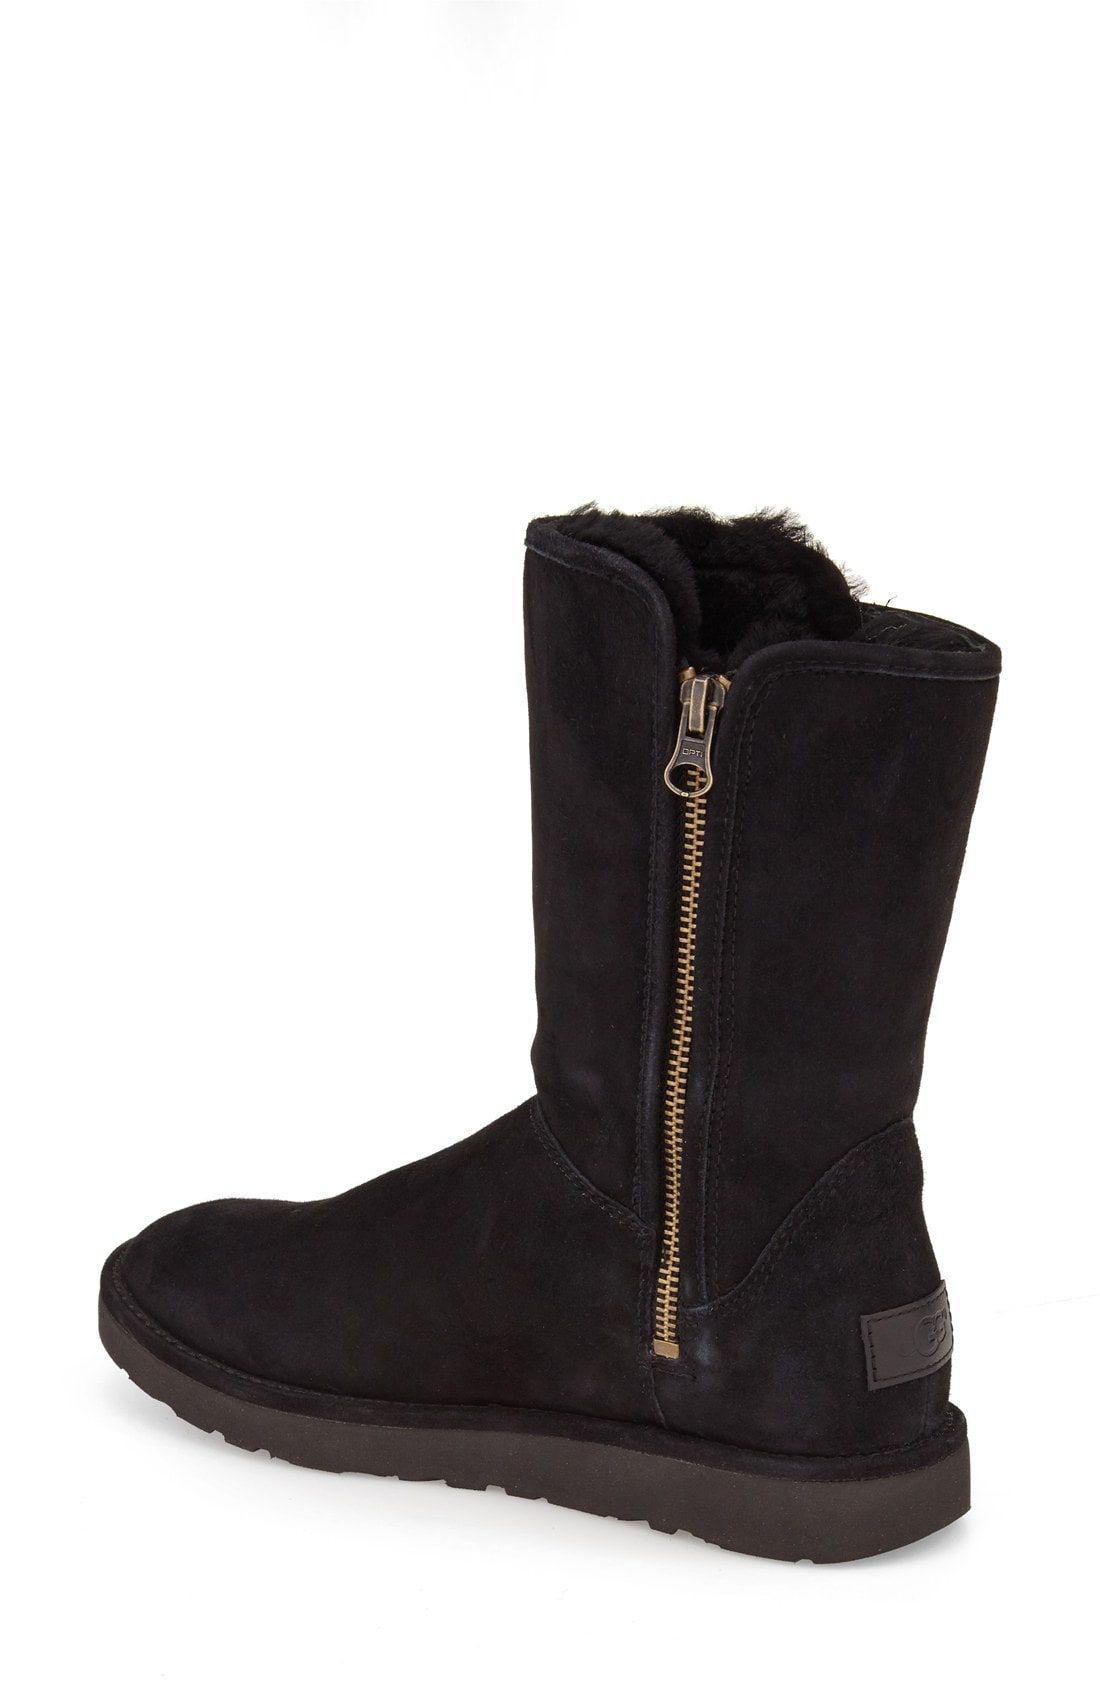 7ad8e7216ef Love these zip up Ugg slippers! | SSS FASHION | Boots, Ugg slippers ...